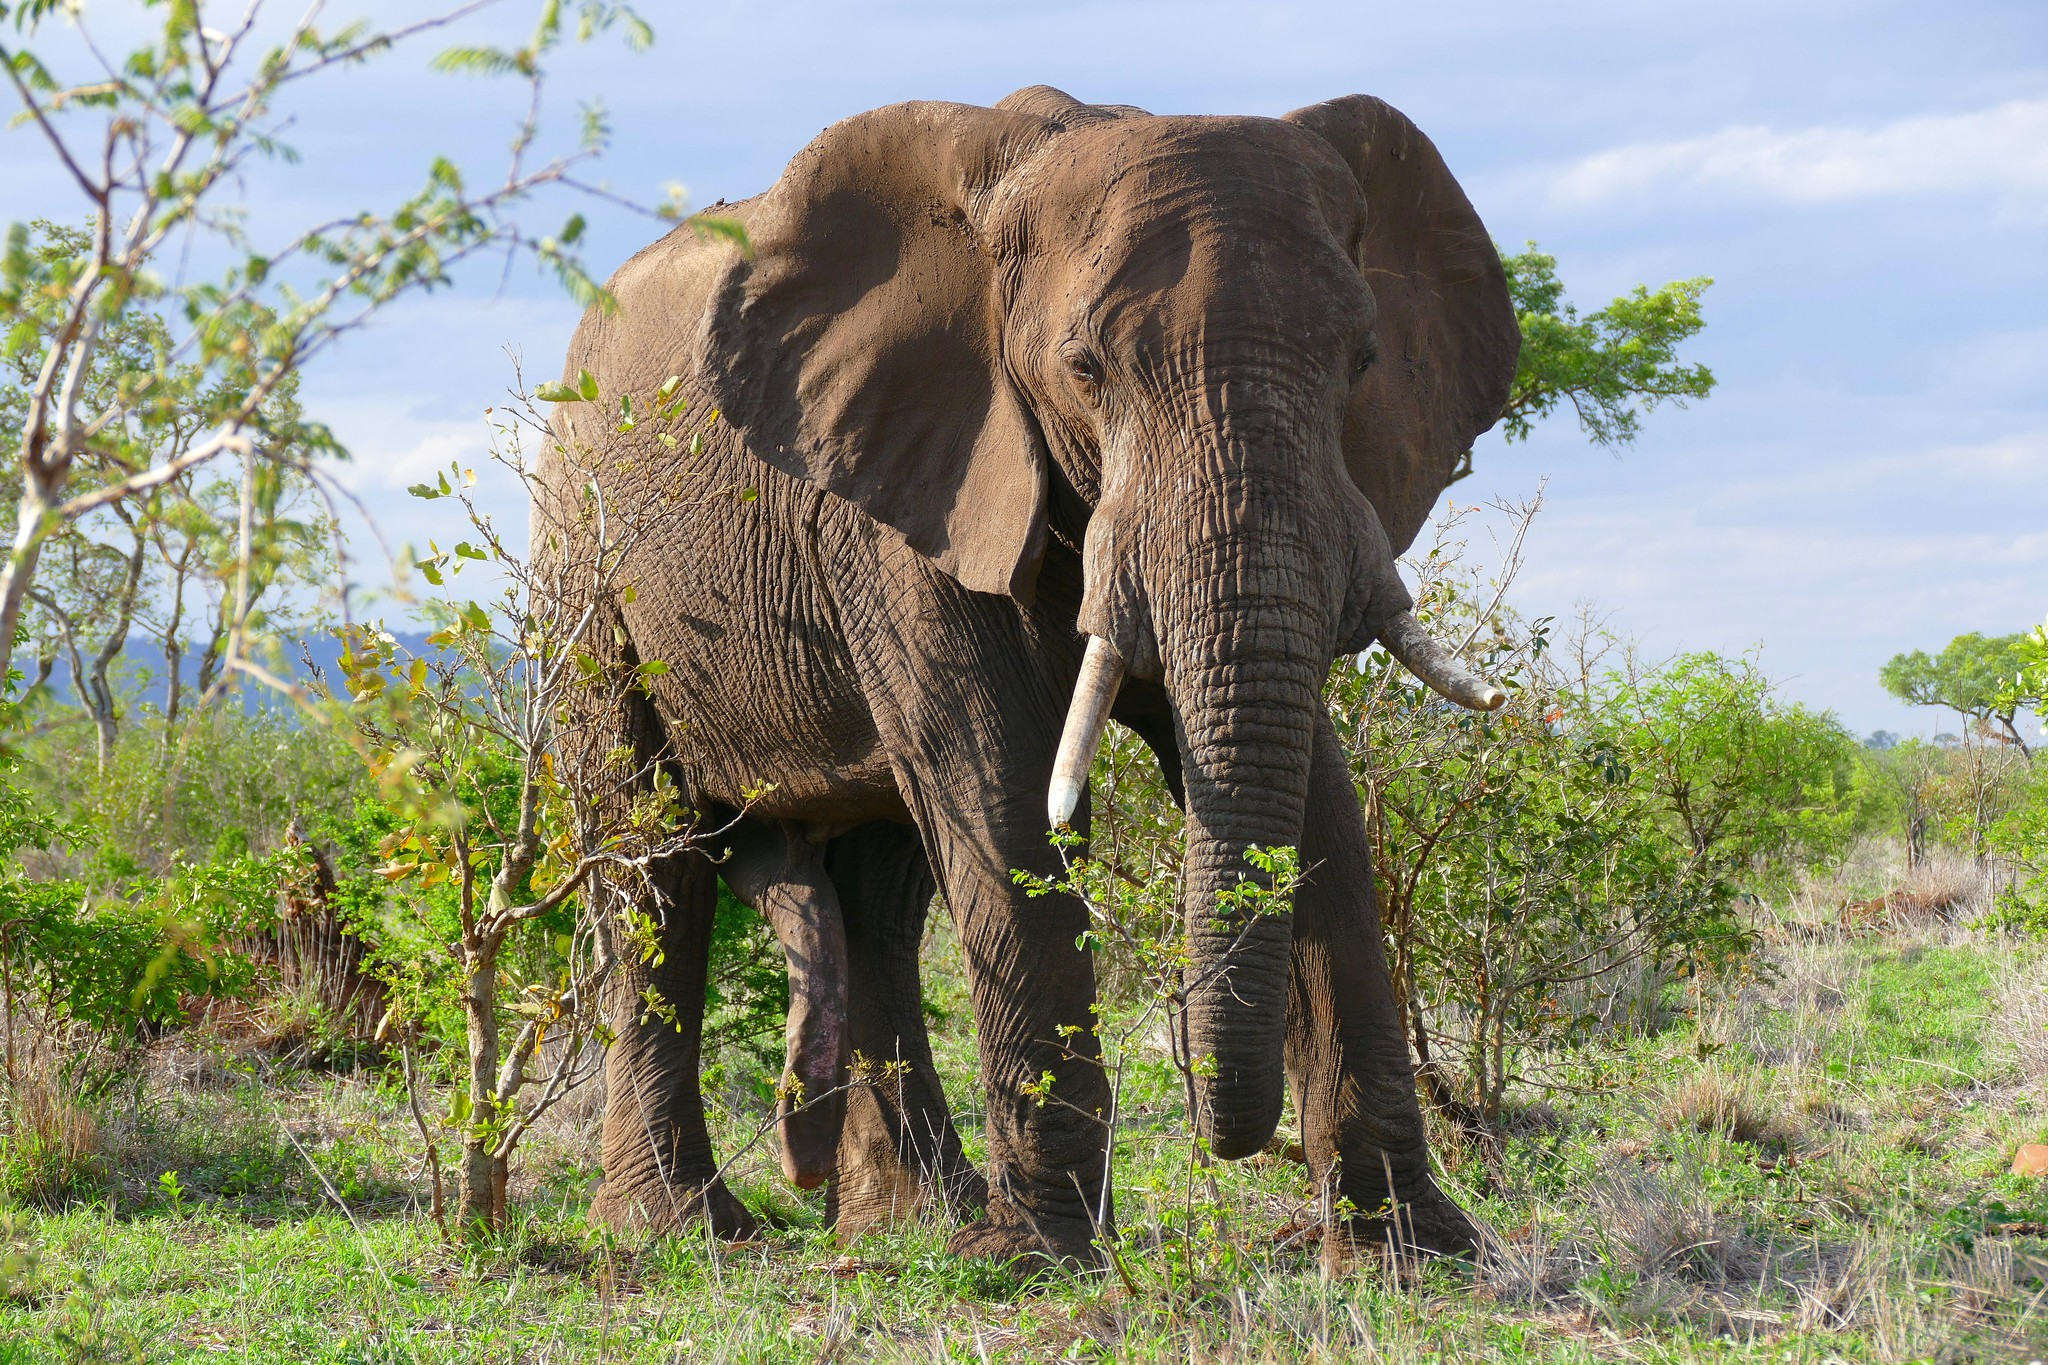 elephant poaching in Africa falls 60%